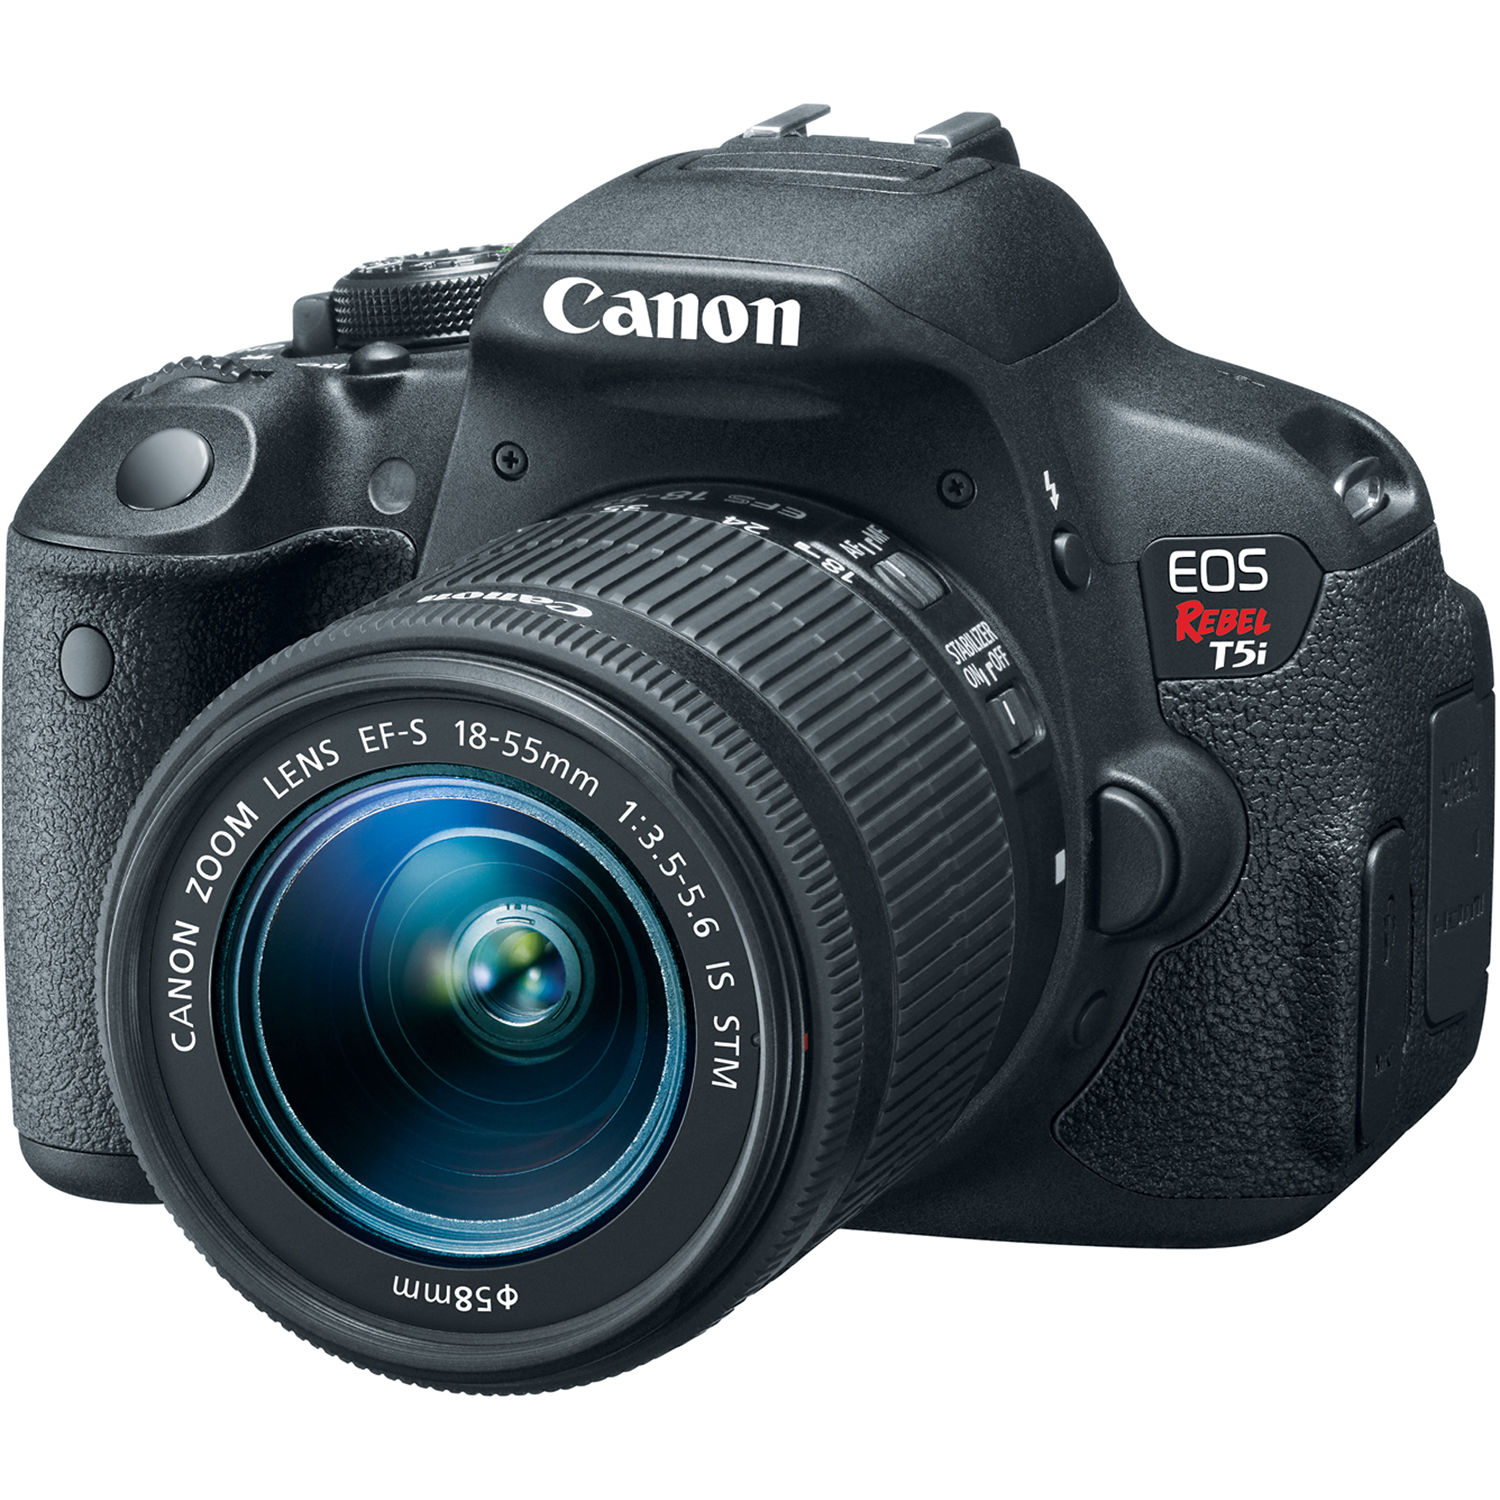 Canon Eos Rebel T5i Dslr Camera With 18 55mm Lens